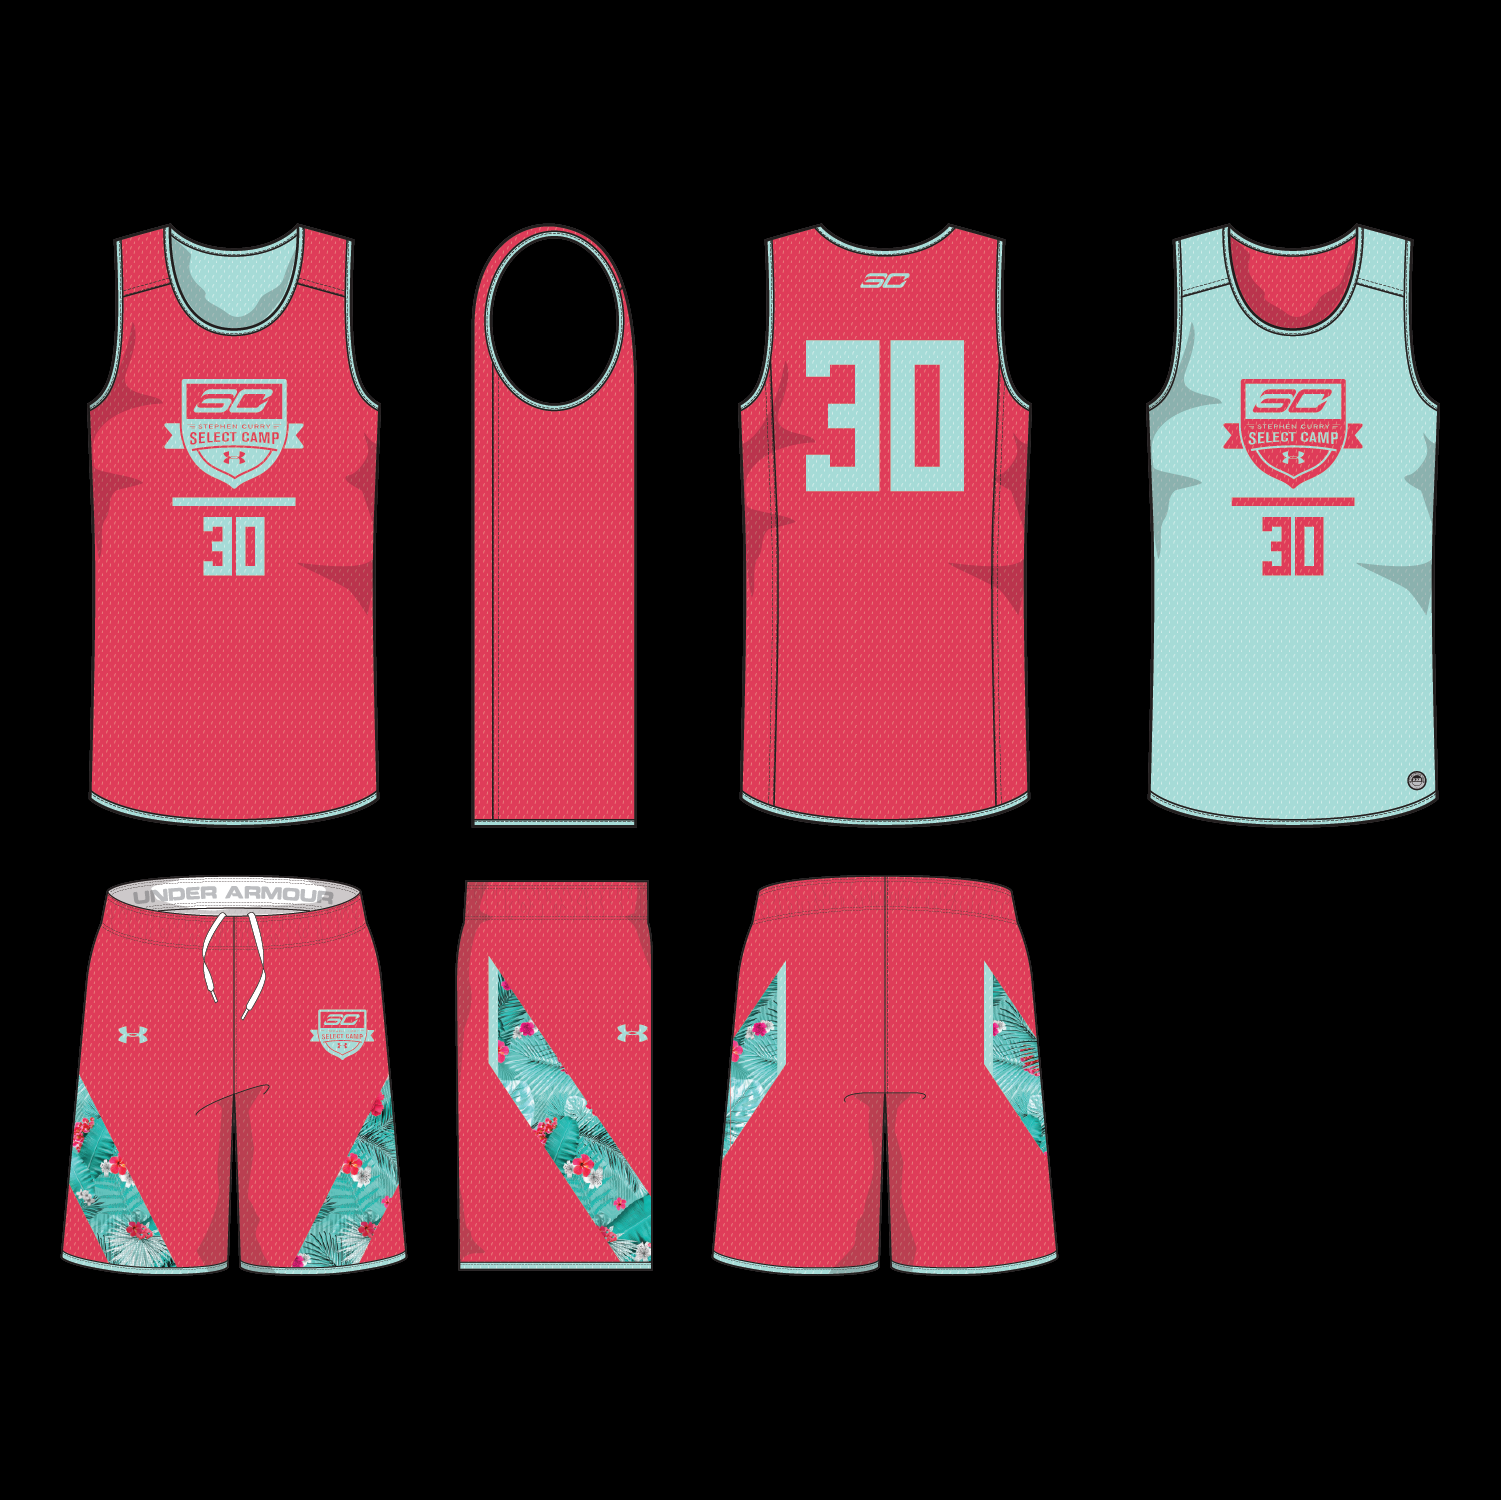 Practice Uniforms Were Designed to Stand OUT while standing apart from the shoes.